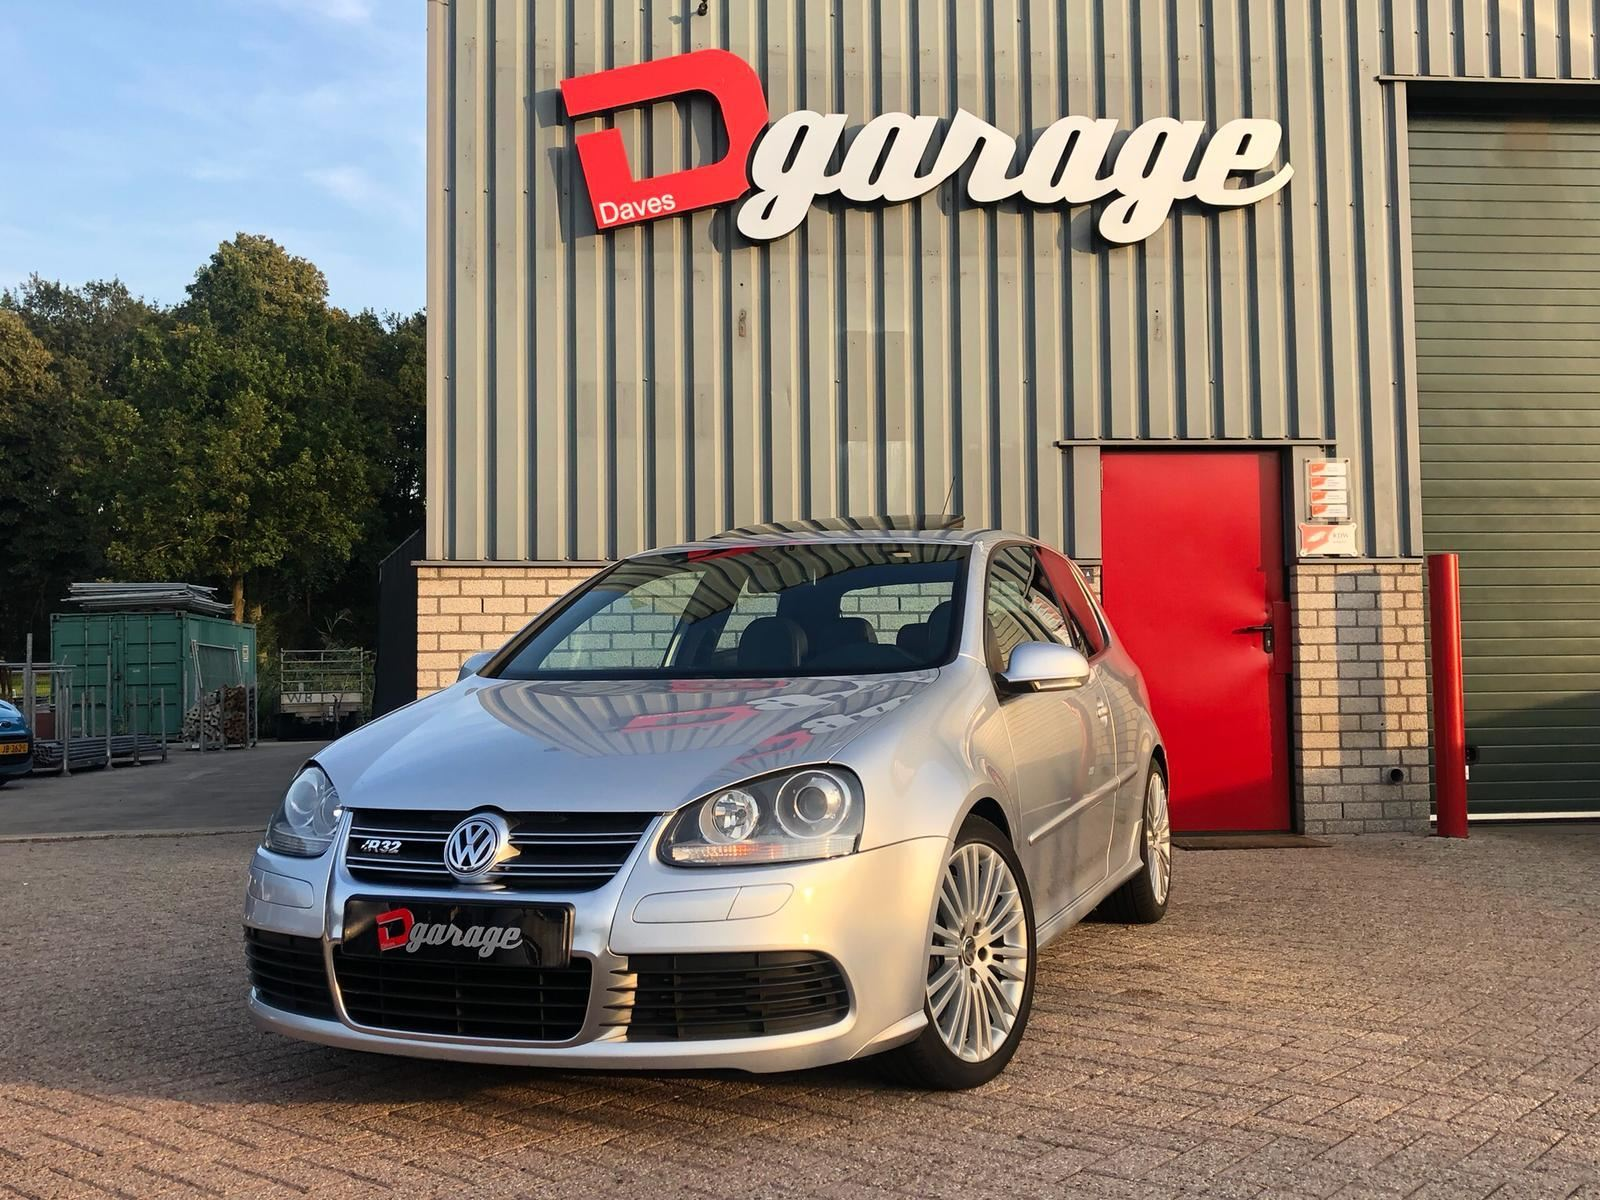 Volkswagen Golf occasion - Dave's Garage